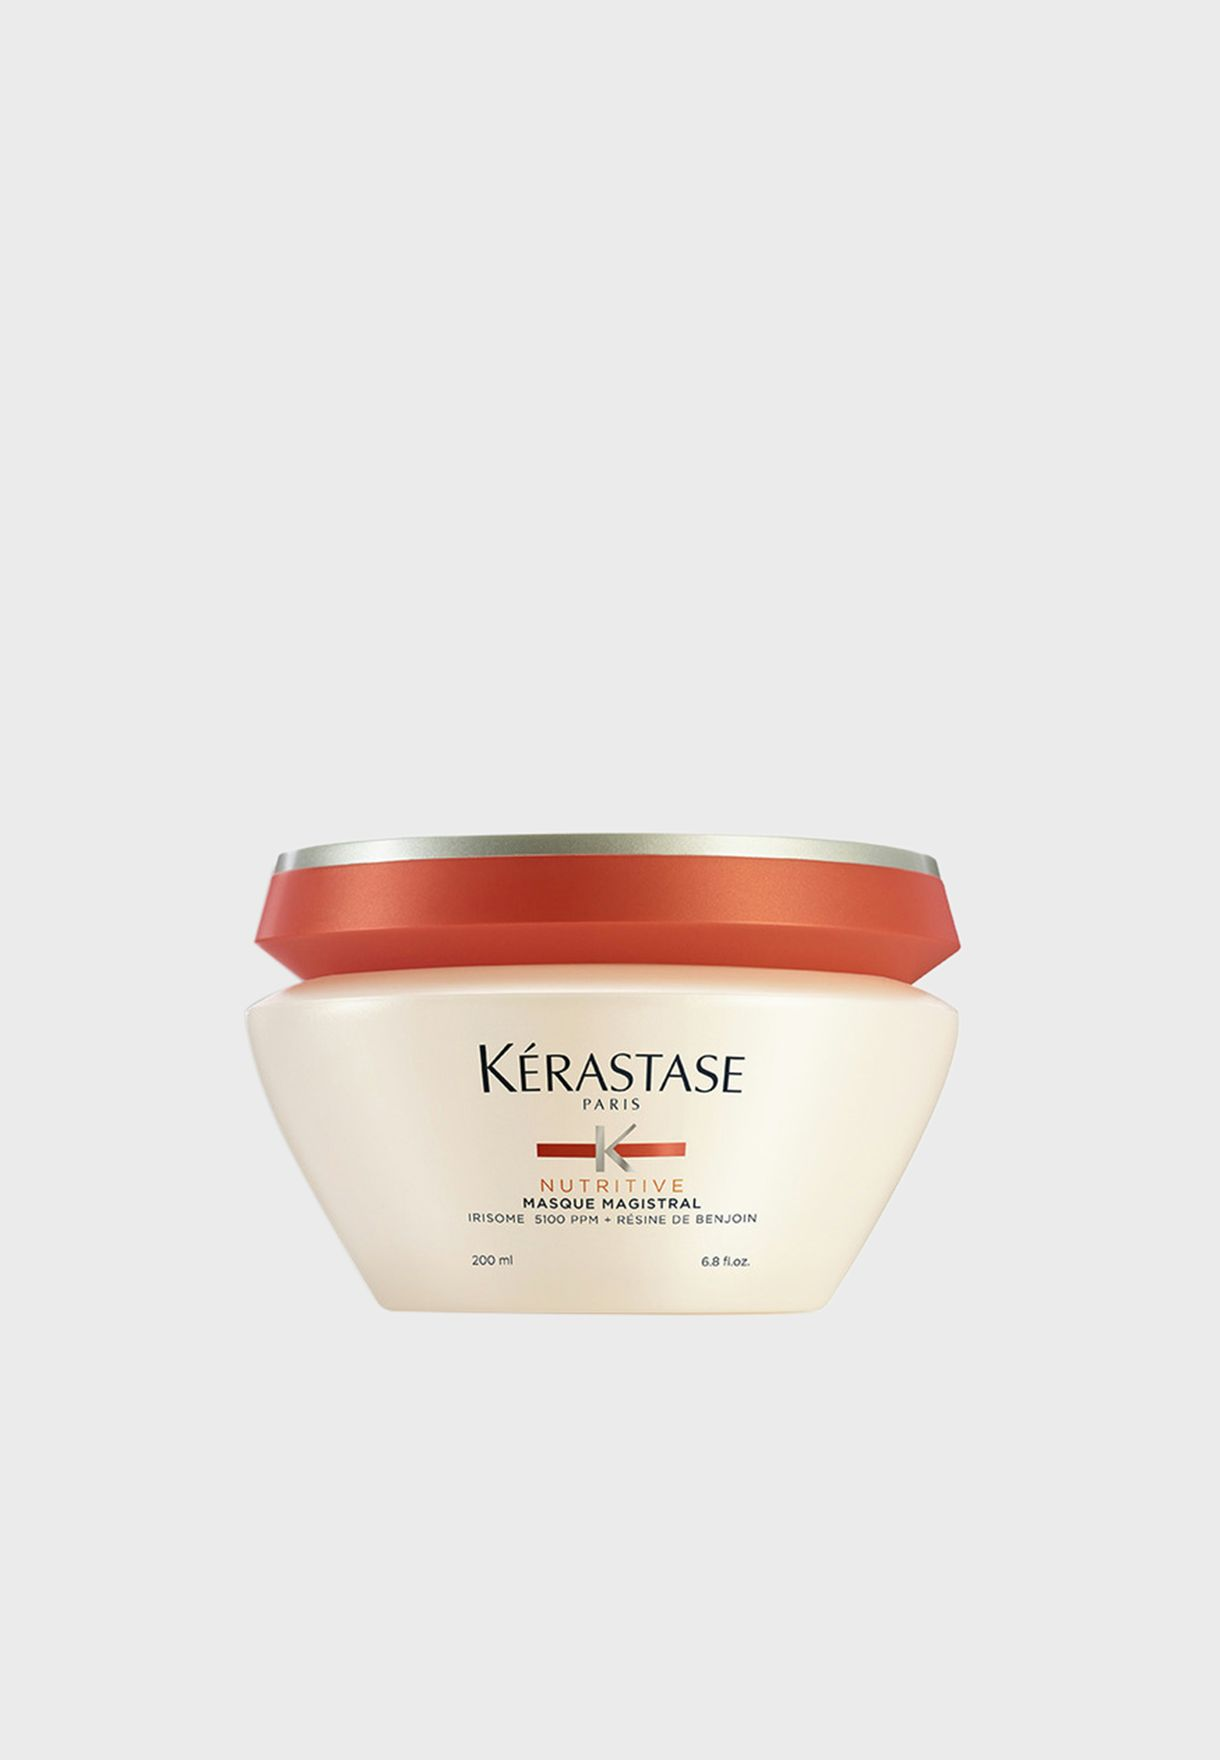 Nutritive Masque Magistral 200ml